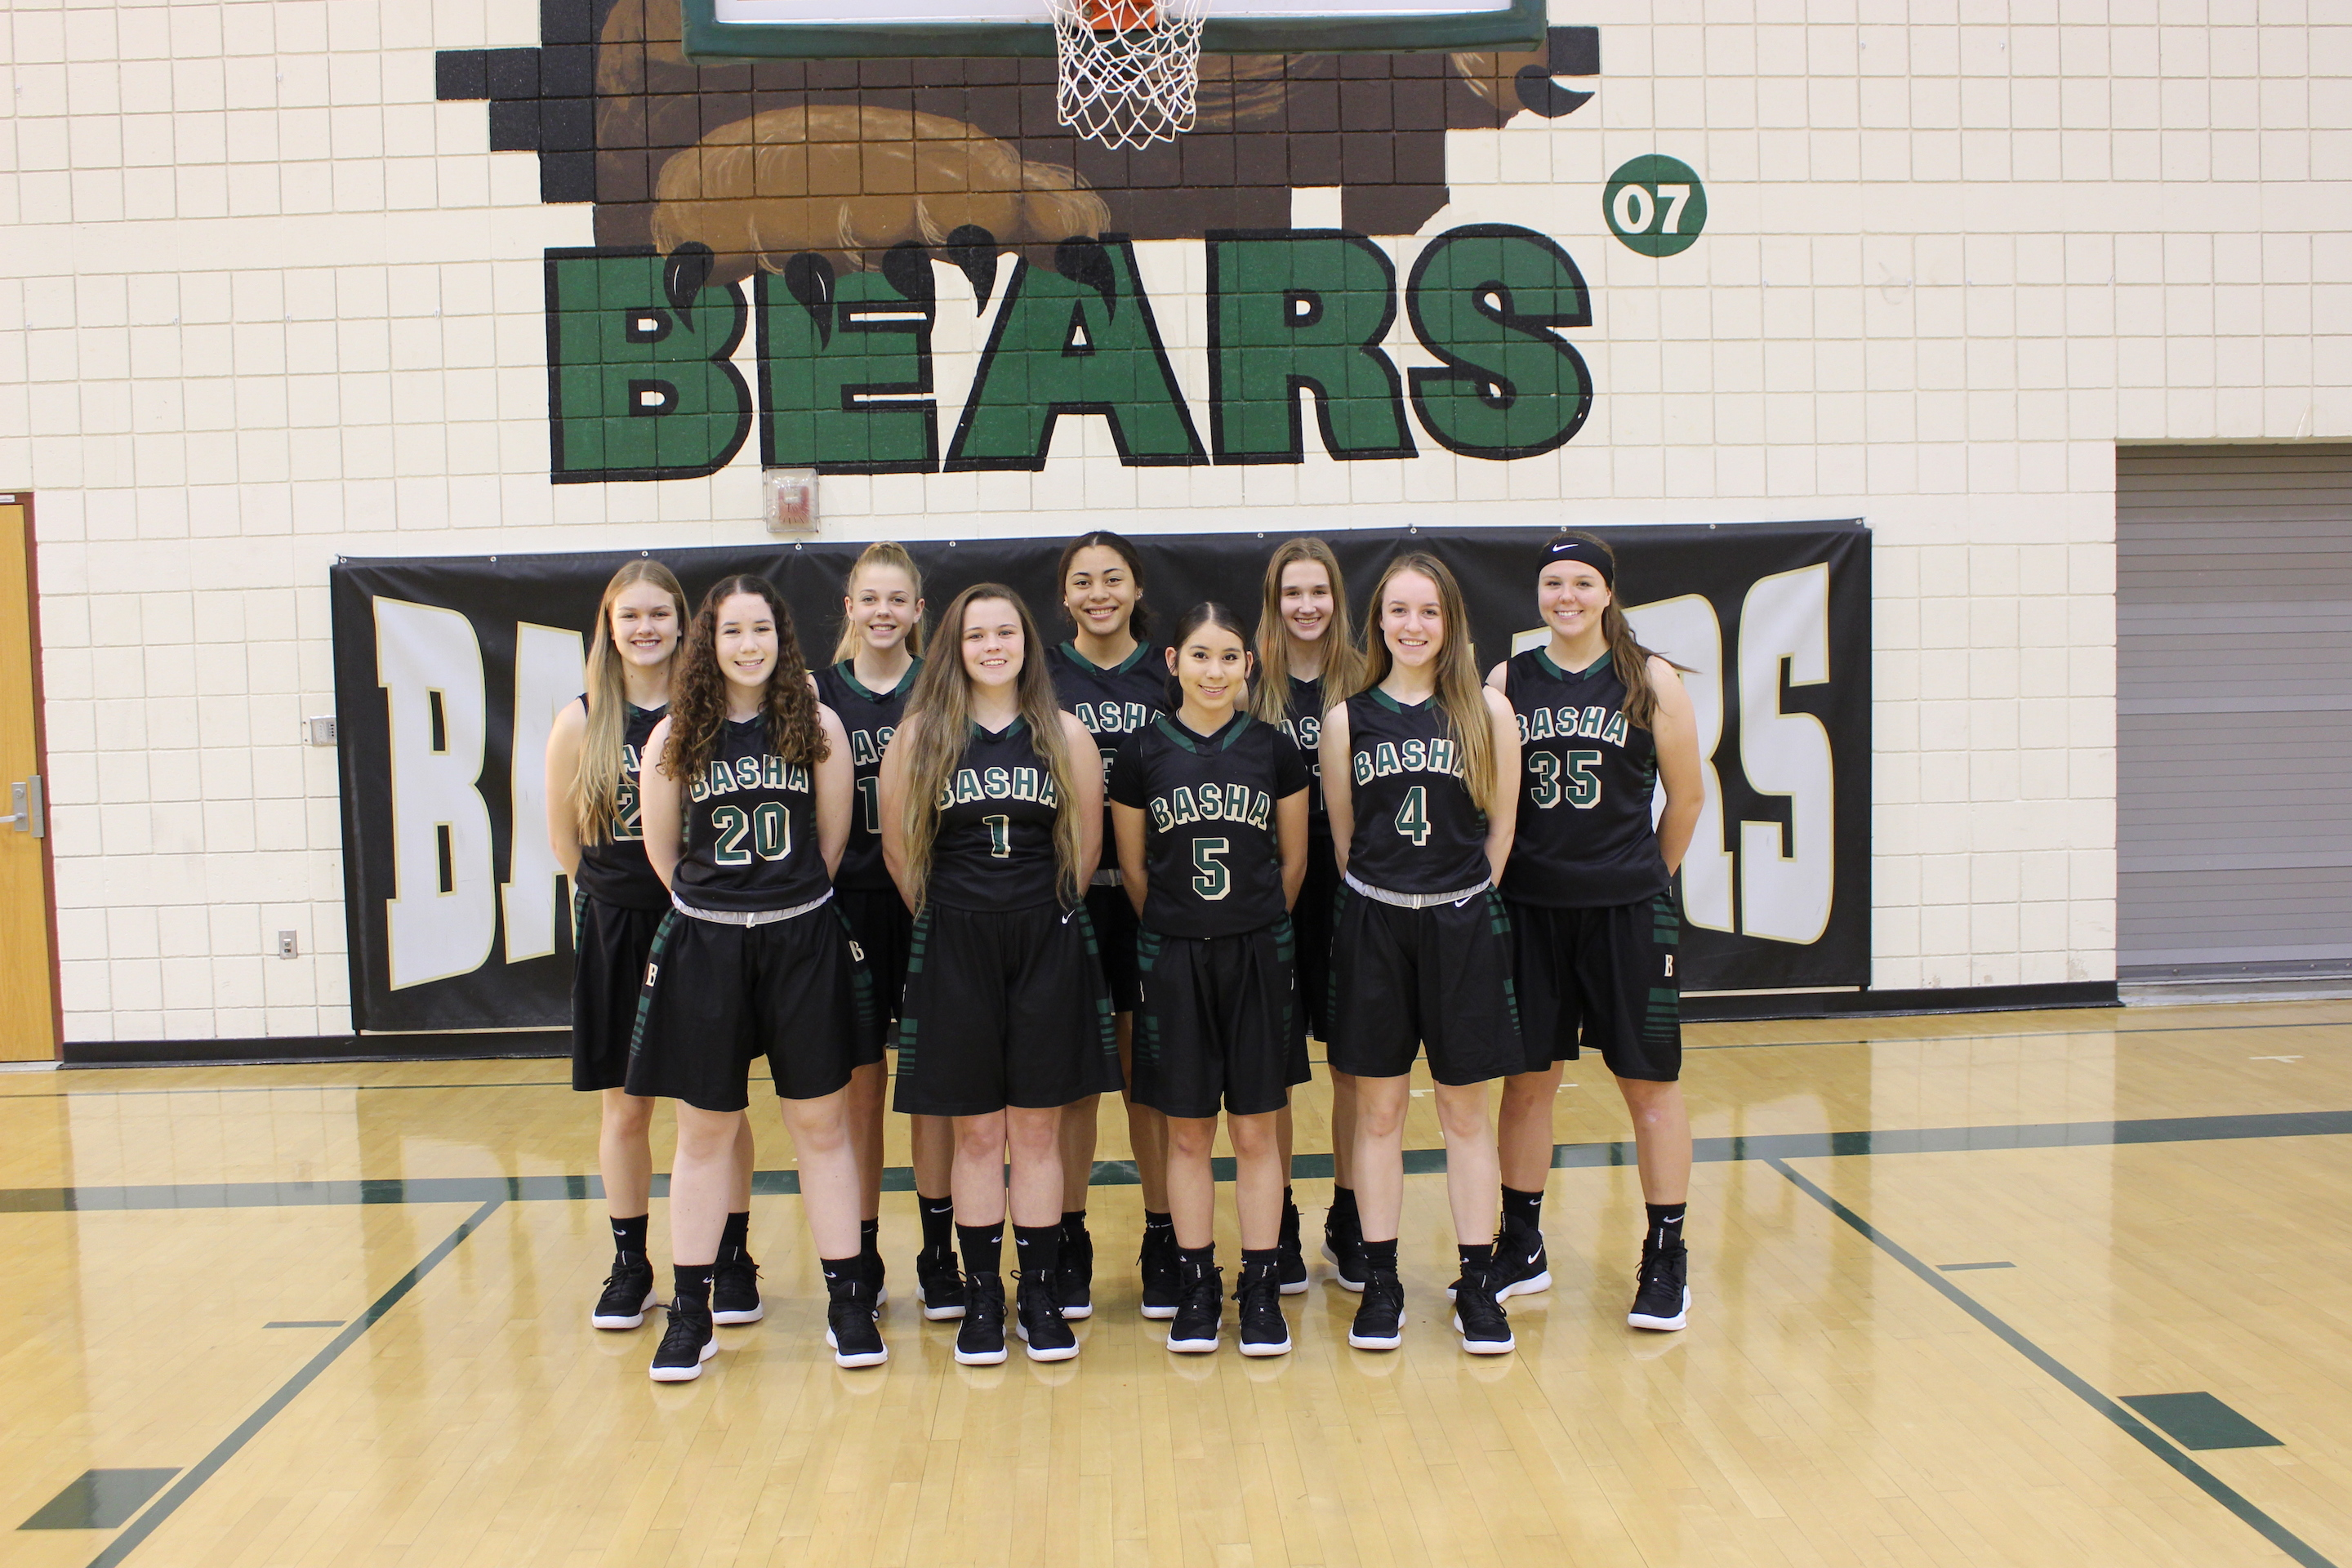 2019 - 2020 Basha Girls Basketball - Support Your Bears!